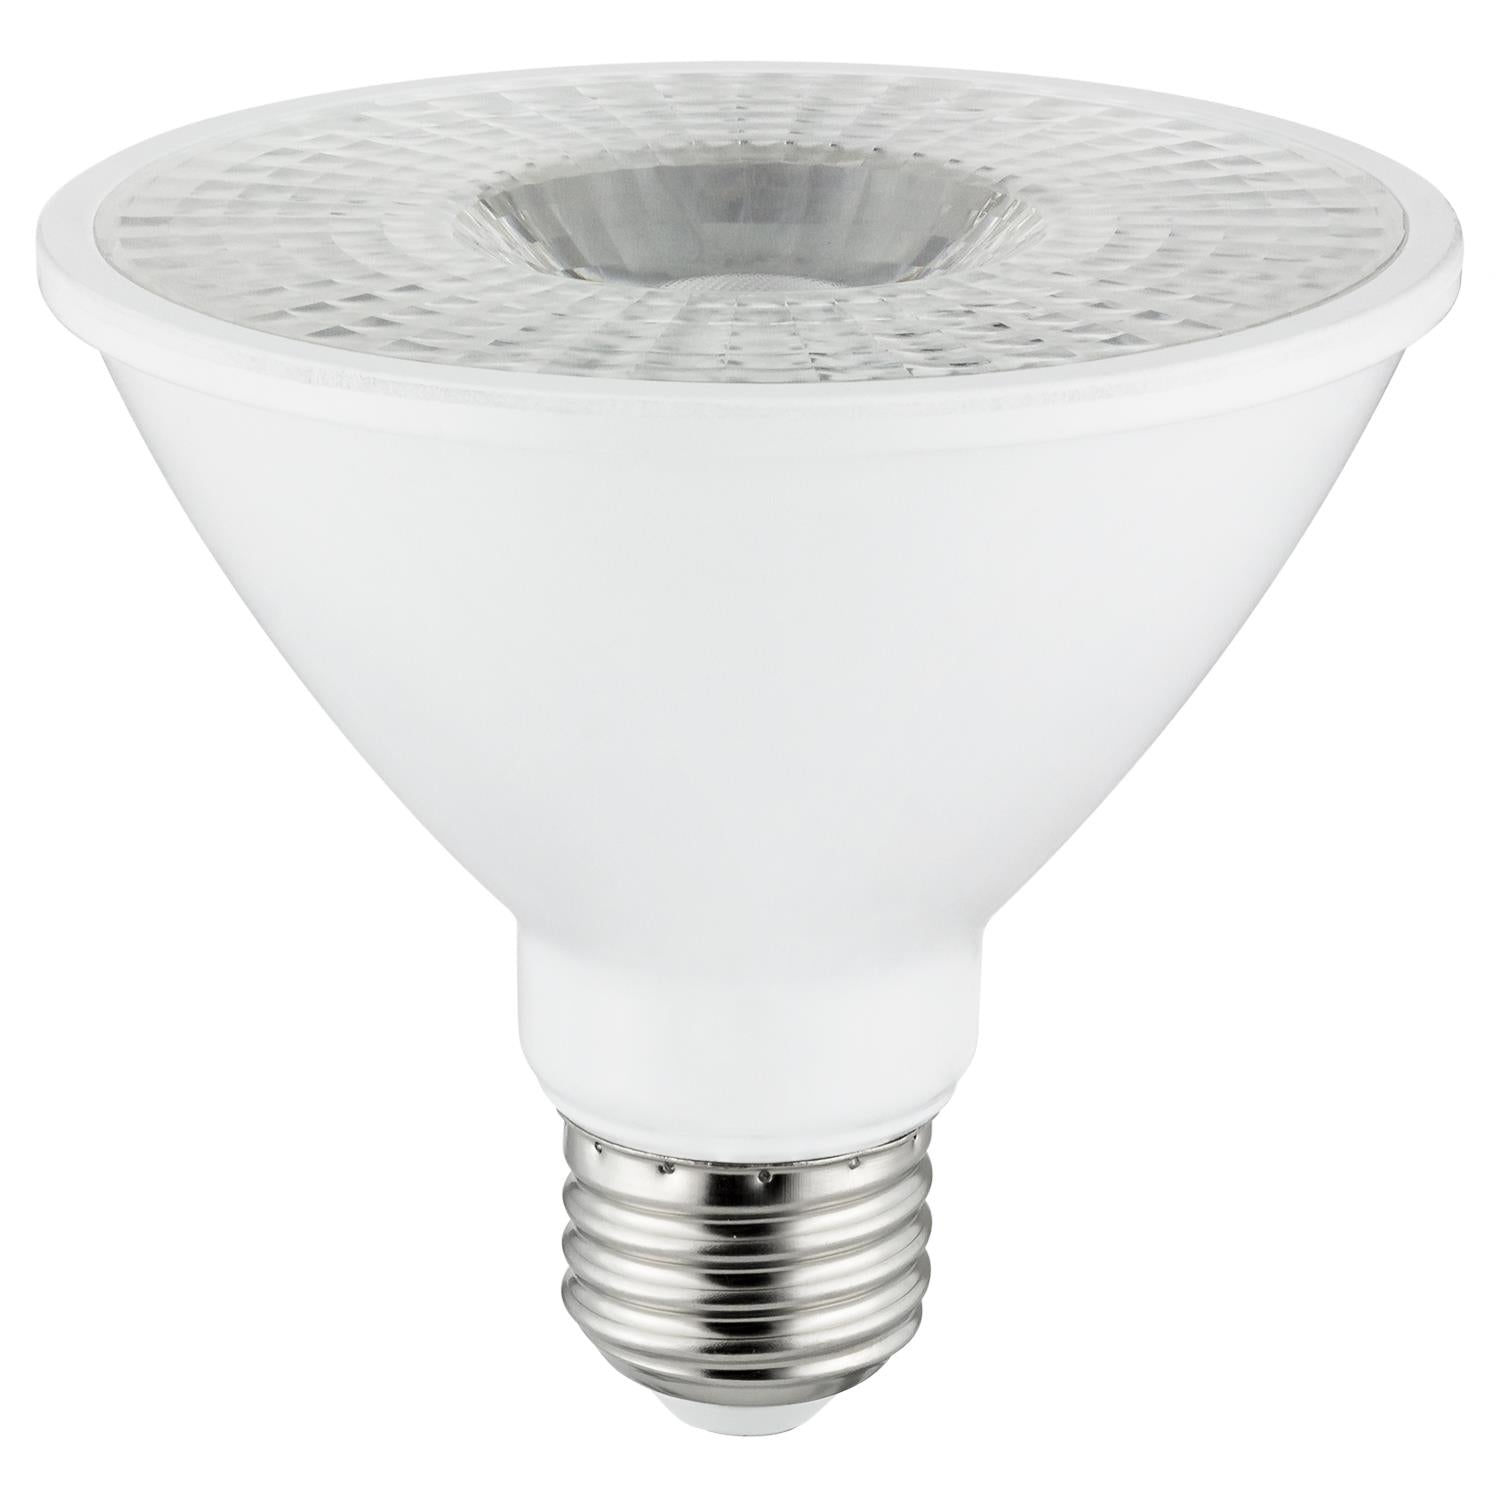 Sunlite 10w LED Par30 Short Neck Dimmable 2700K Warm White Light Bulb